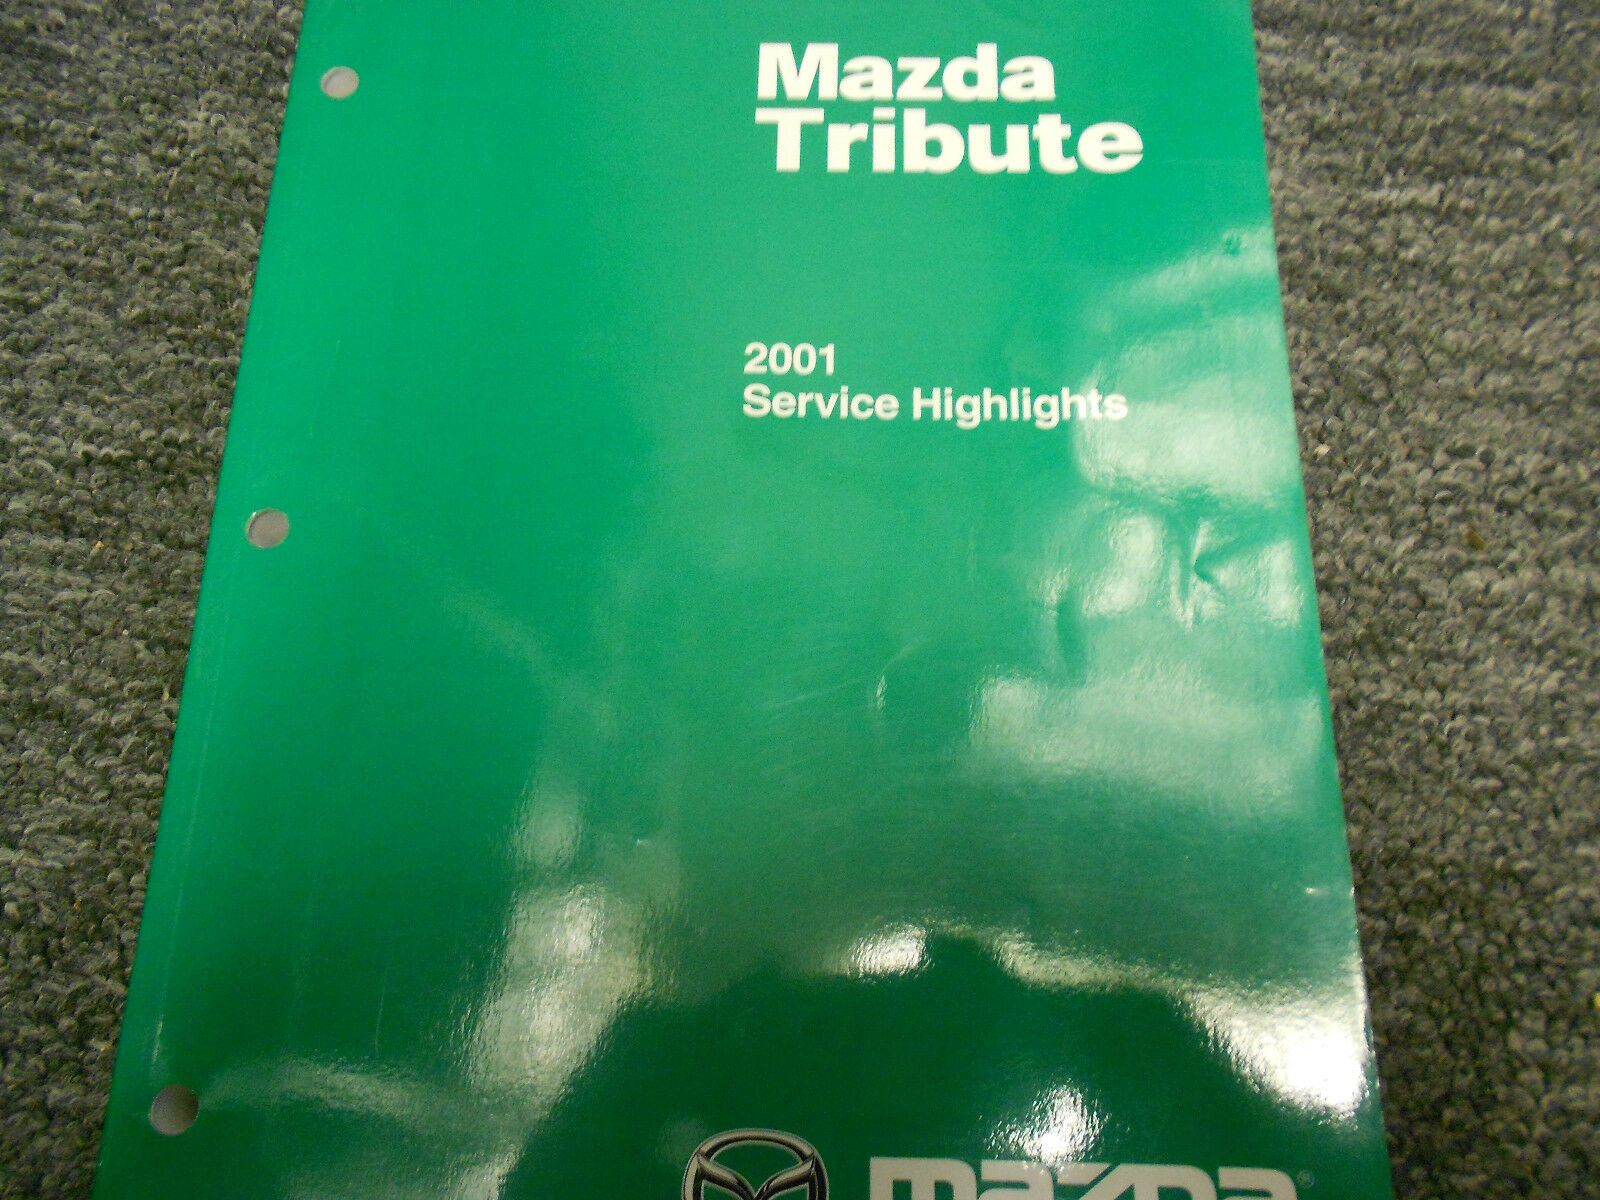 Primary image for 2001 Mazda Tribute Service Highlights service Repair Shop Manual FACTORY BOOK 01